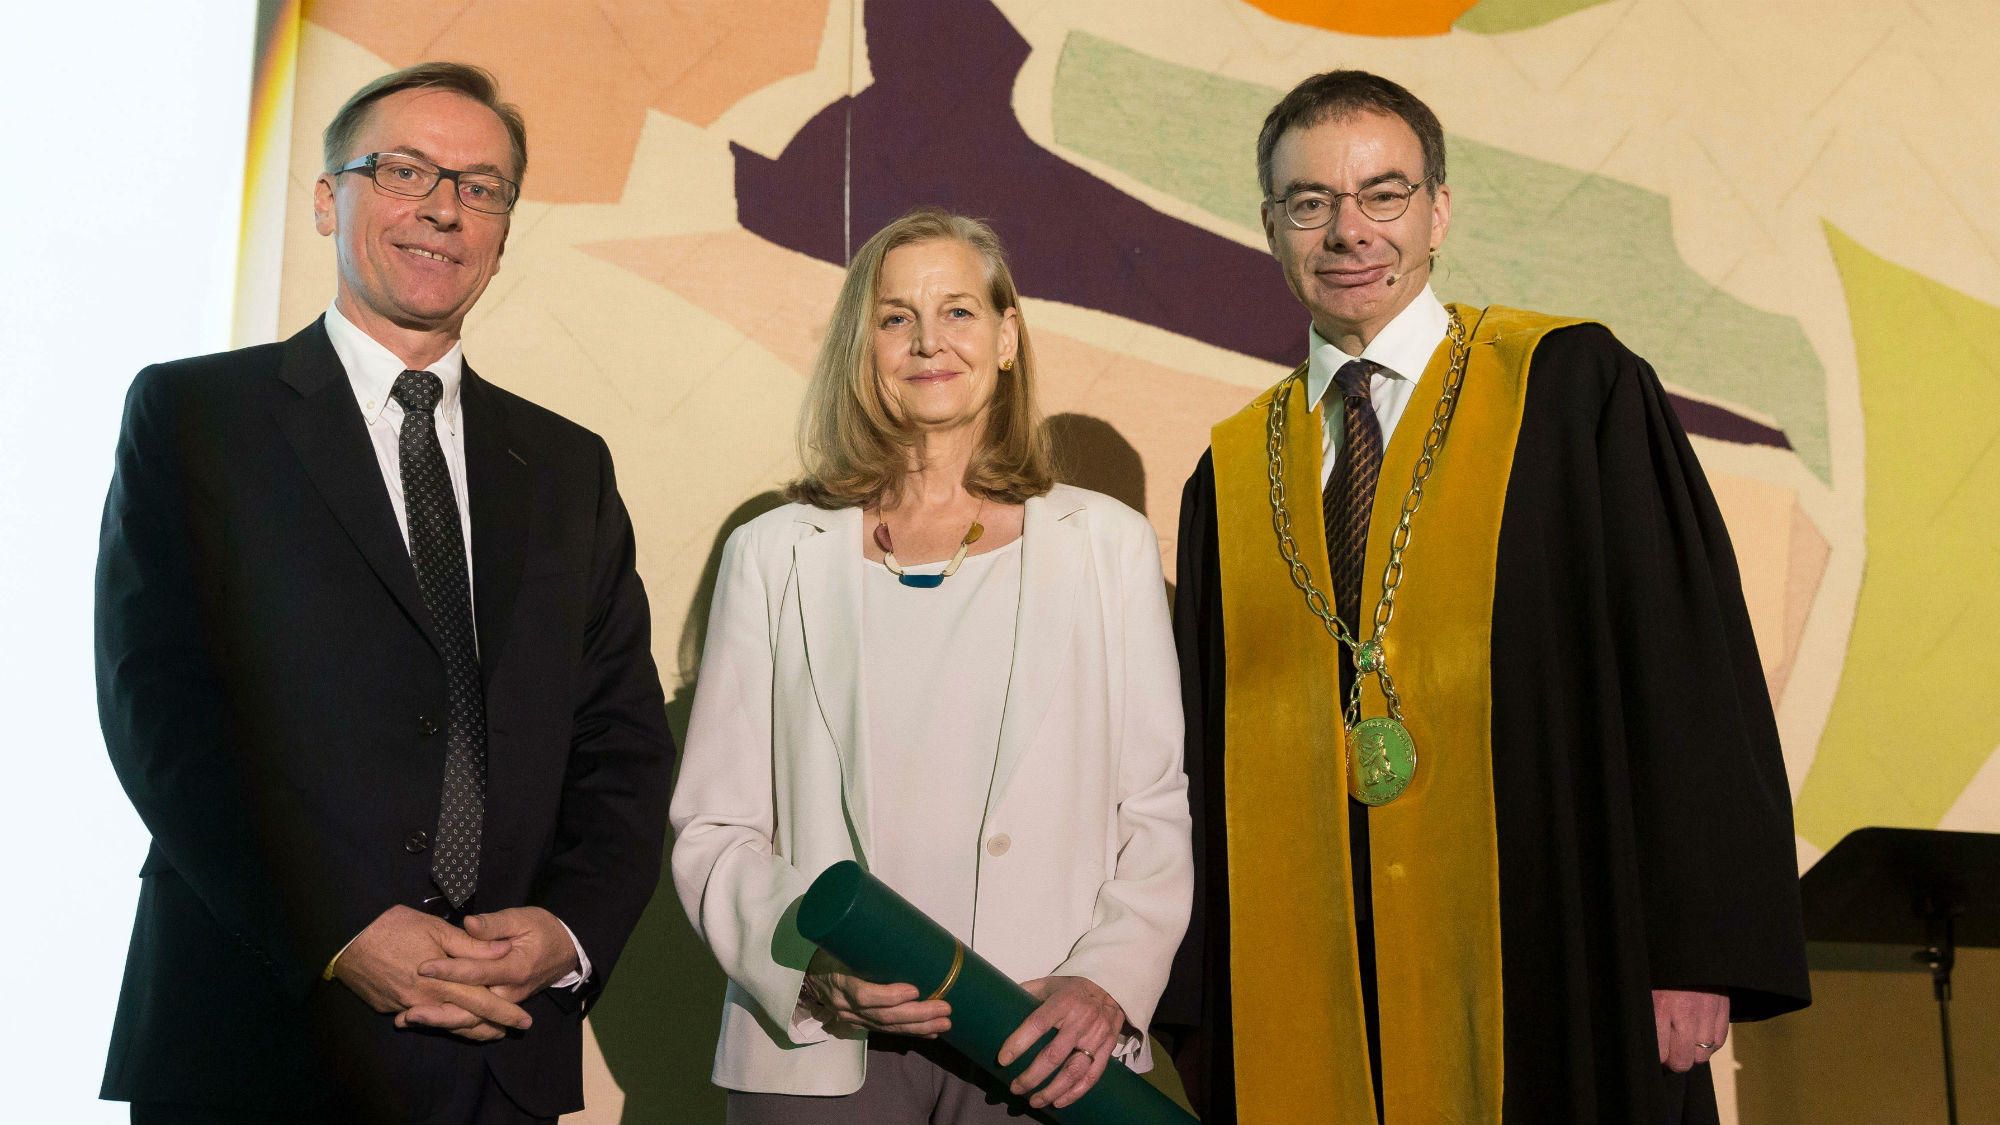 Honorary Doctor Martha S. Feldmann